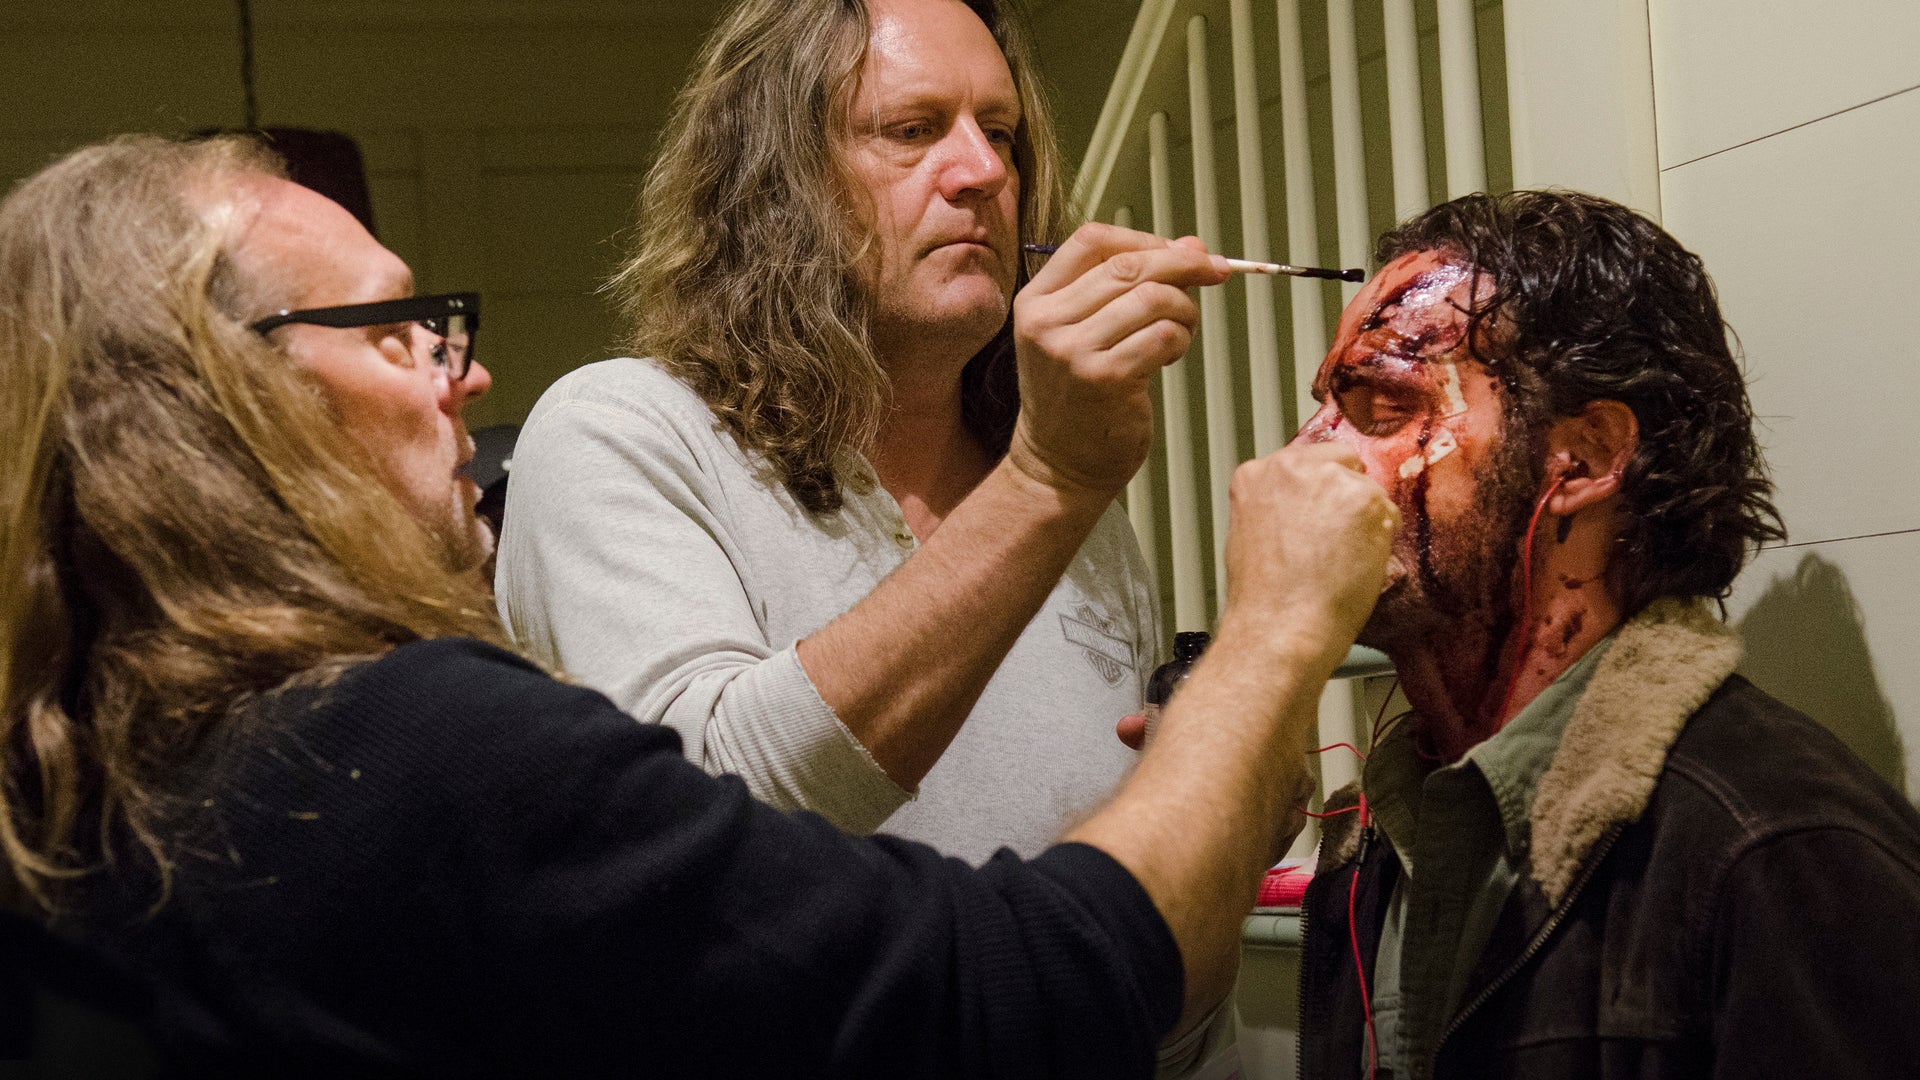 Greg Nicotero and Andrew Lincoln as Rick Grimes, The Walking Dead